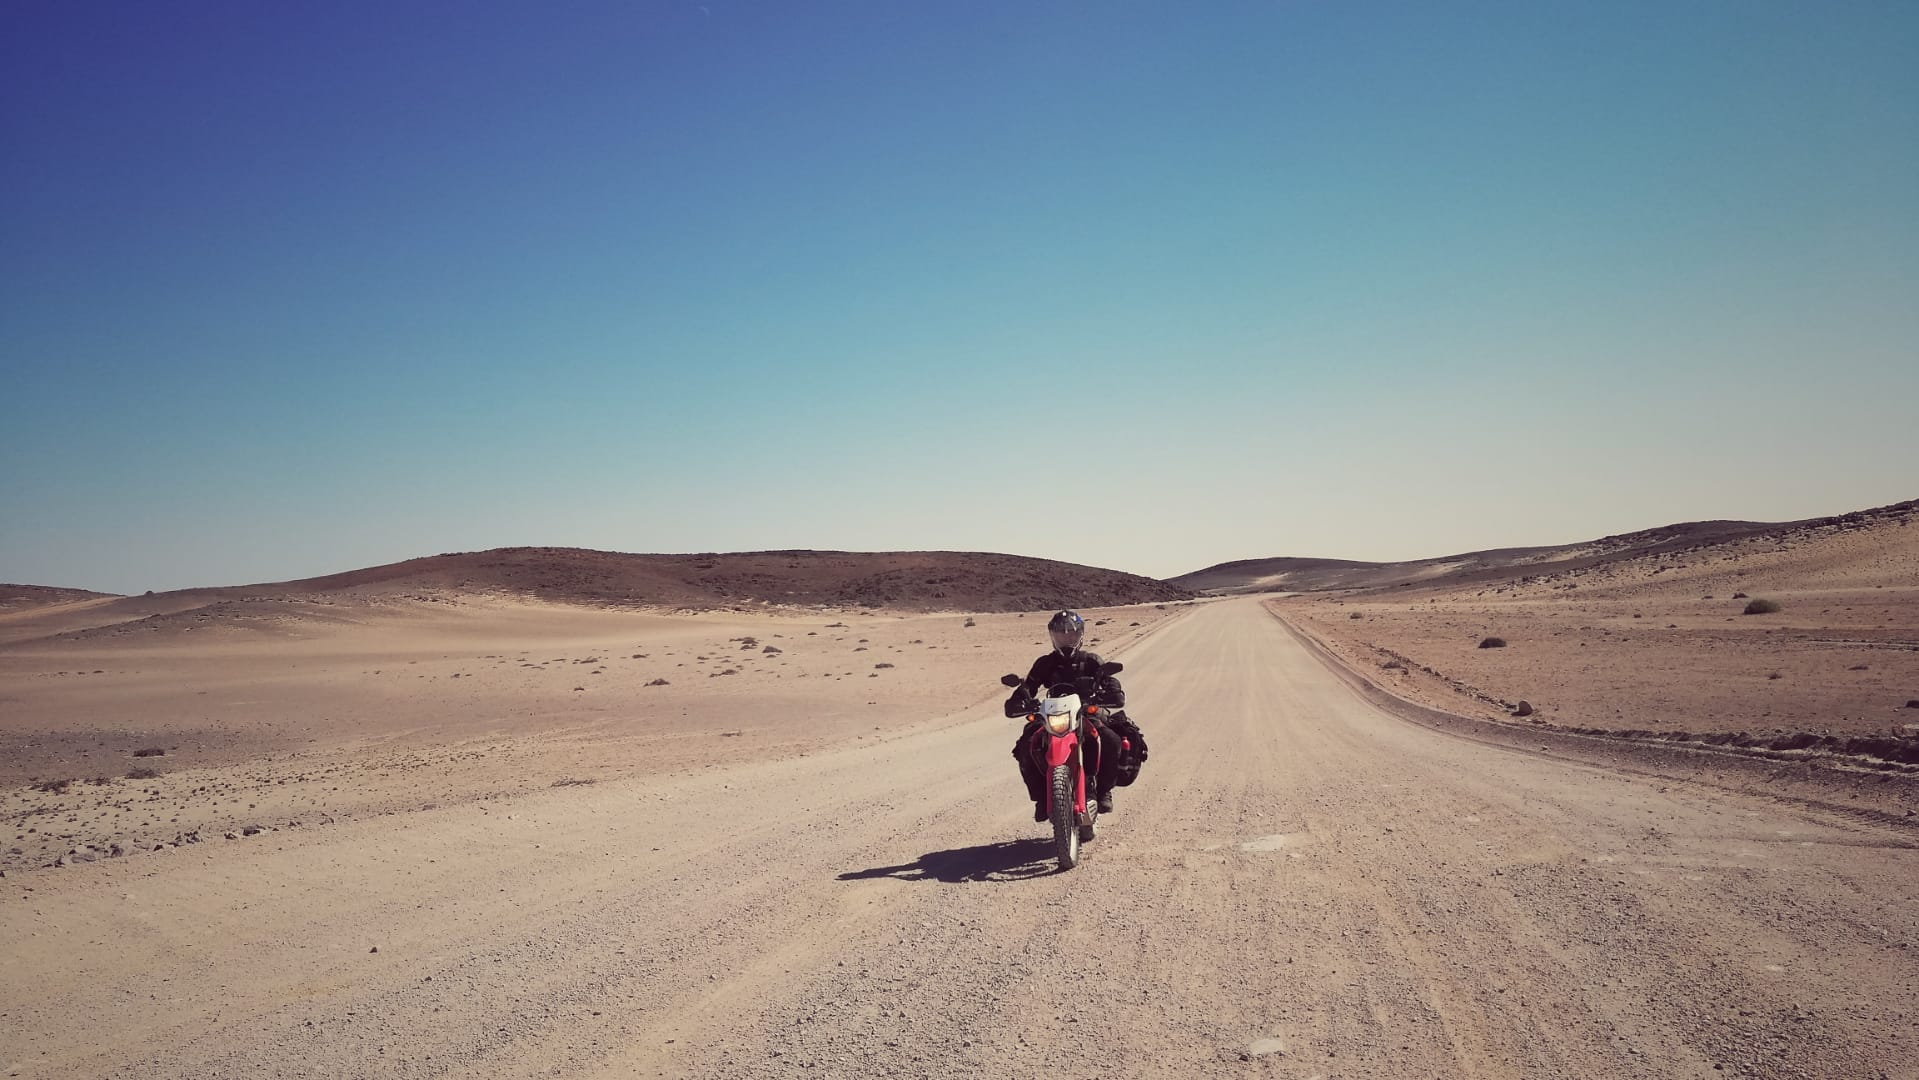 Riding in Namibia. Photo credit: @its_moodo.